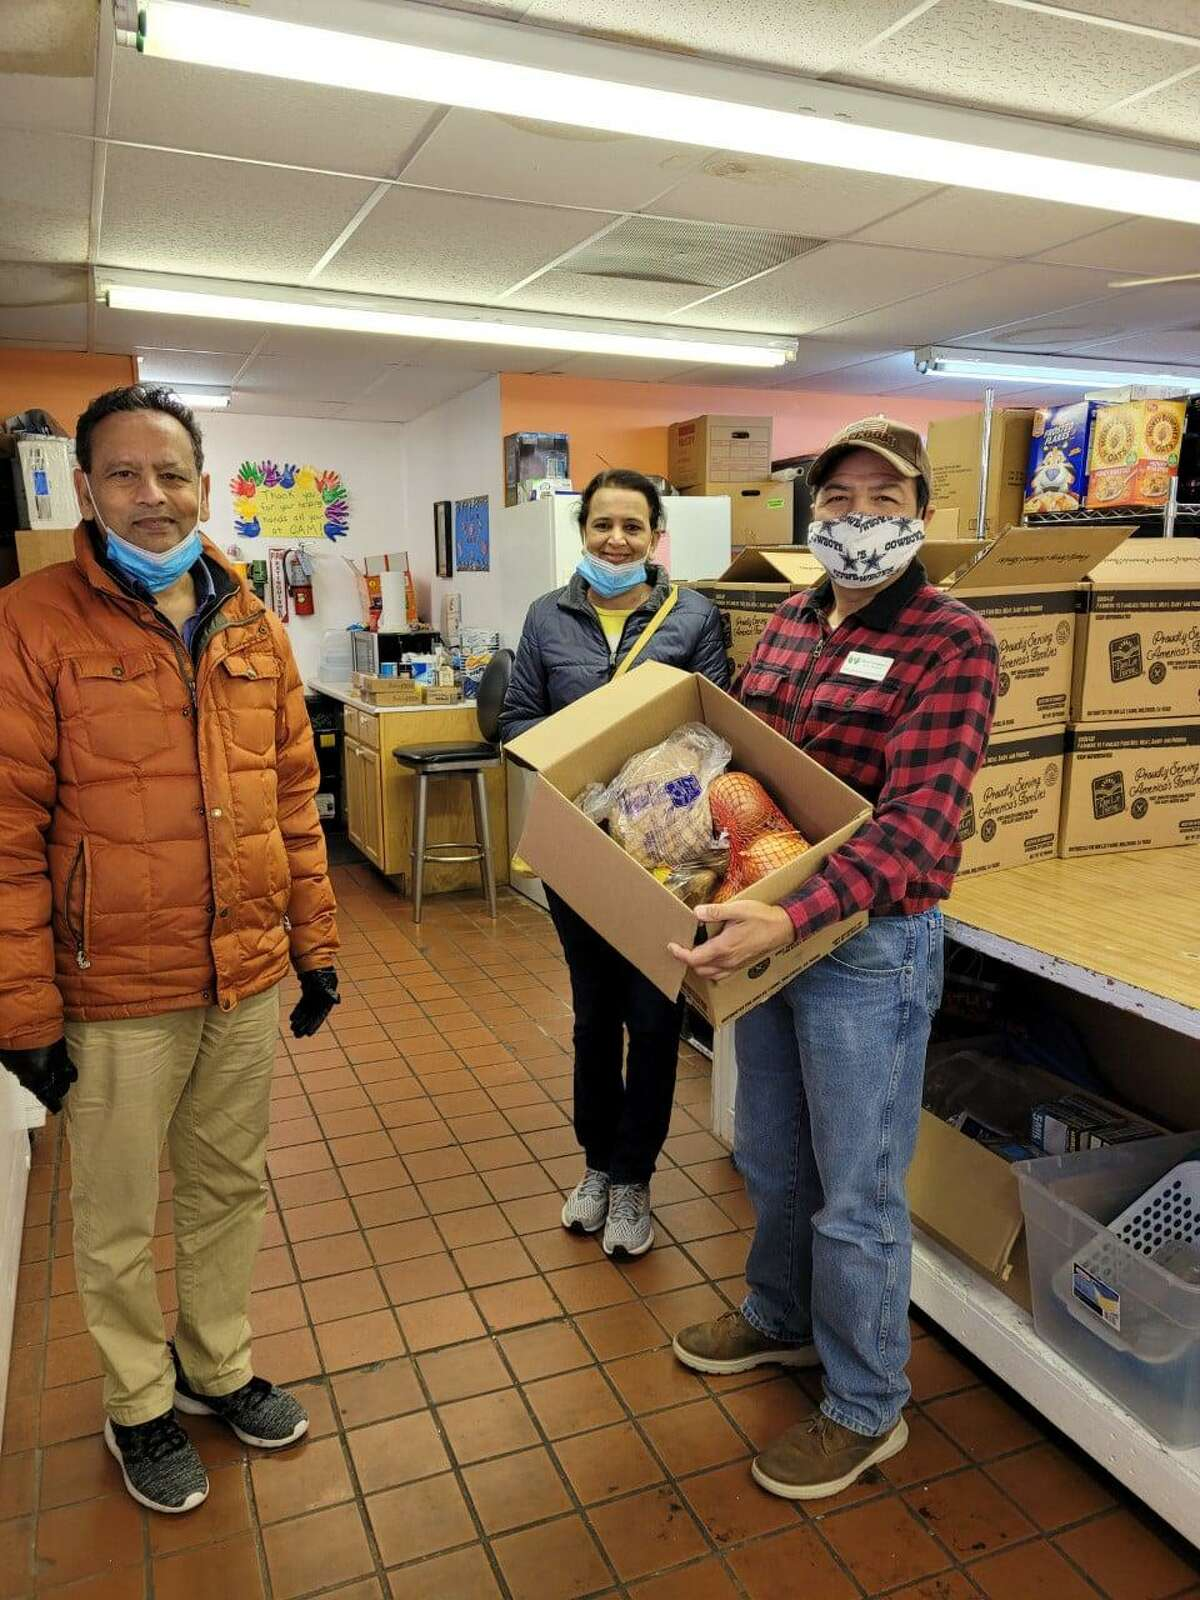 Cypress Assistance Ministries, Northwest Assistance Ministries and Cy-Hope have all received donations and aid from local families and organizations.